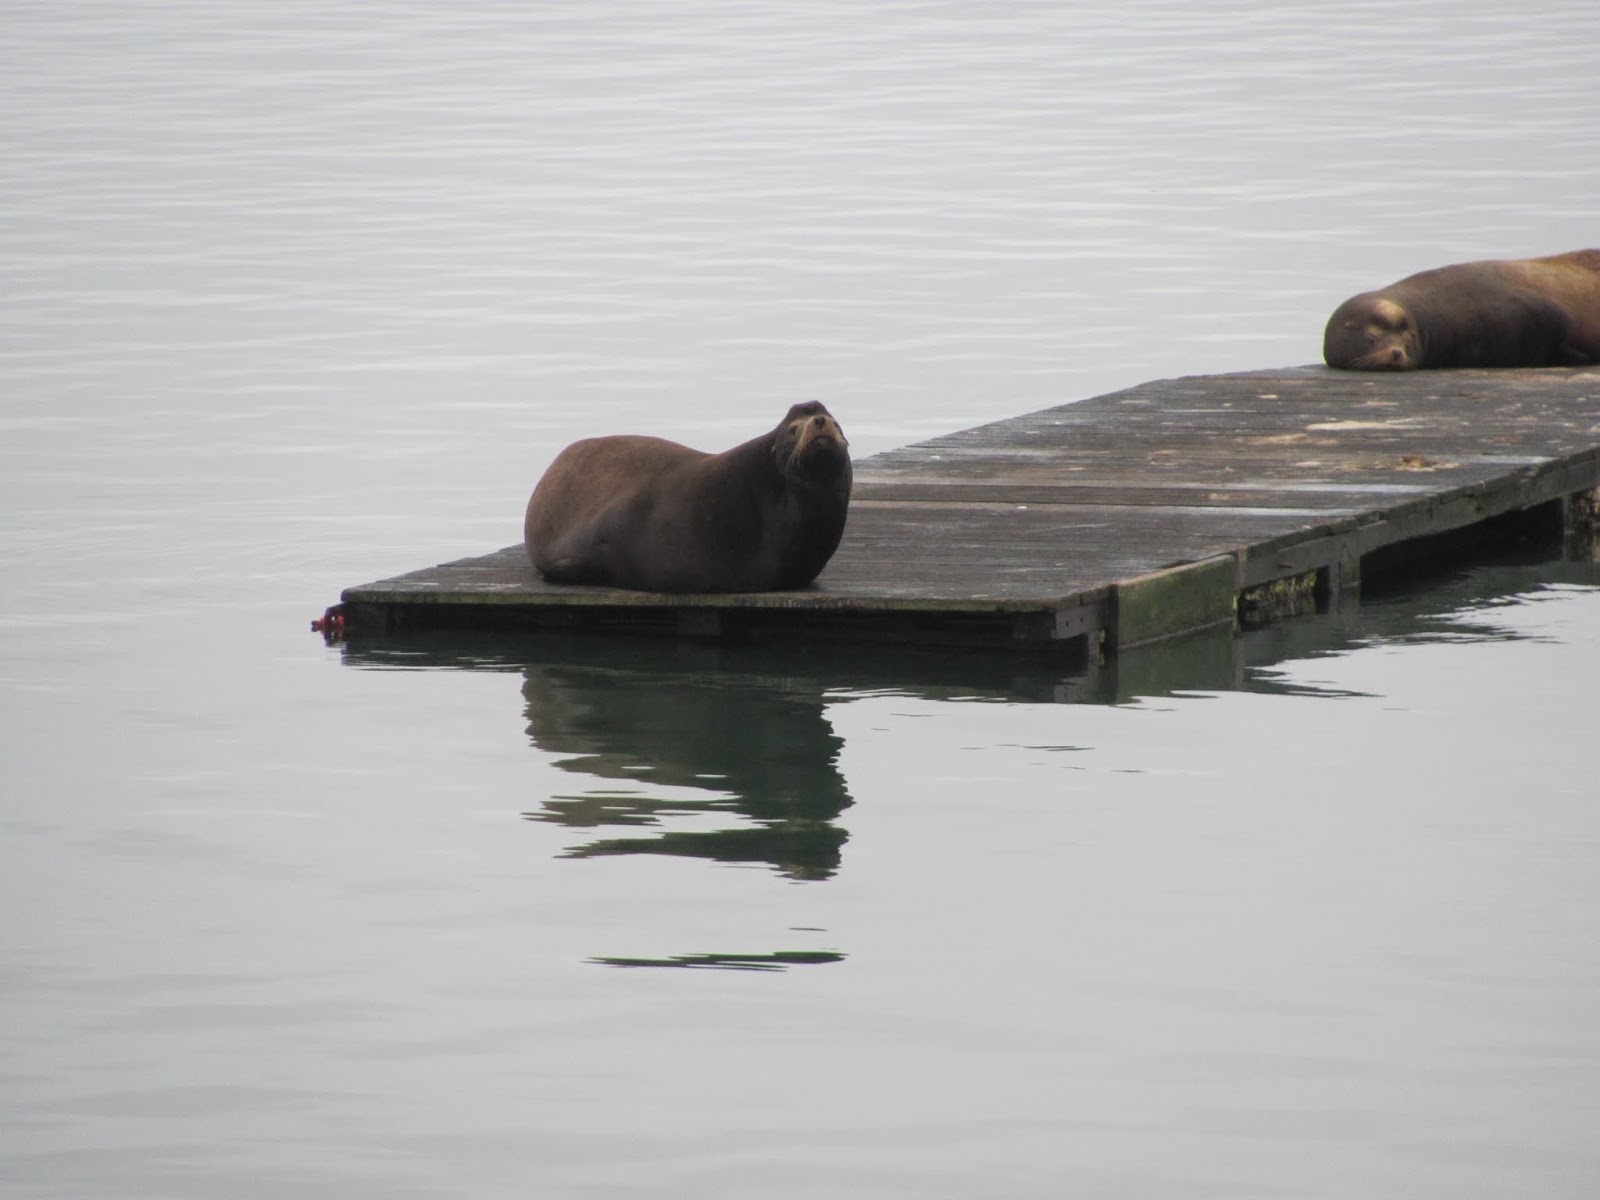 An adult seal rests on a dock at Anchor Bay, California